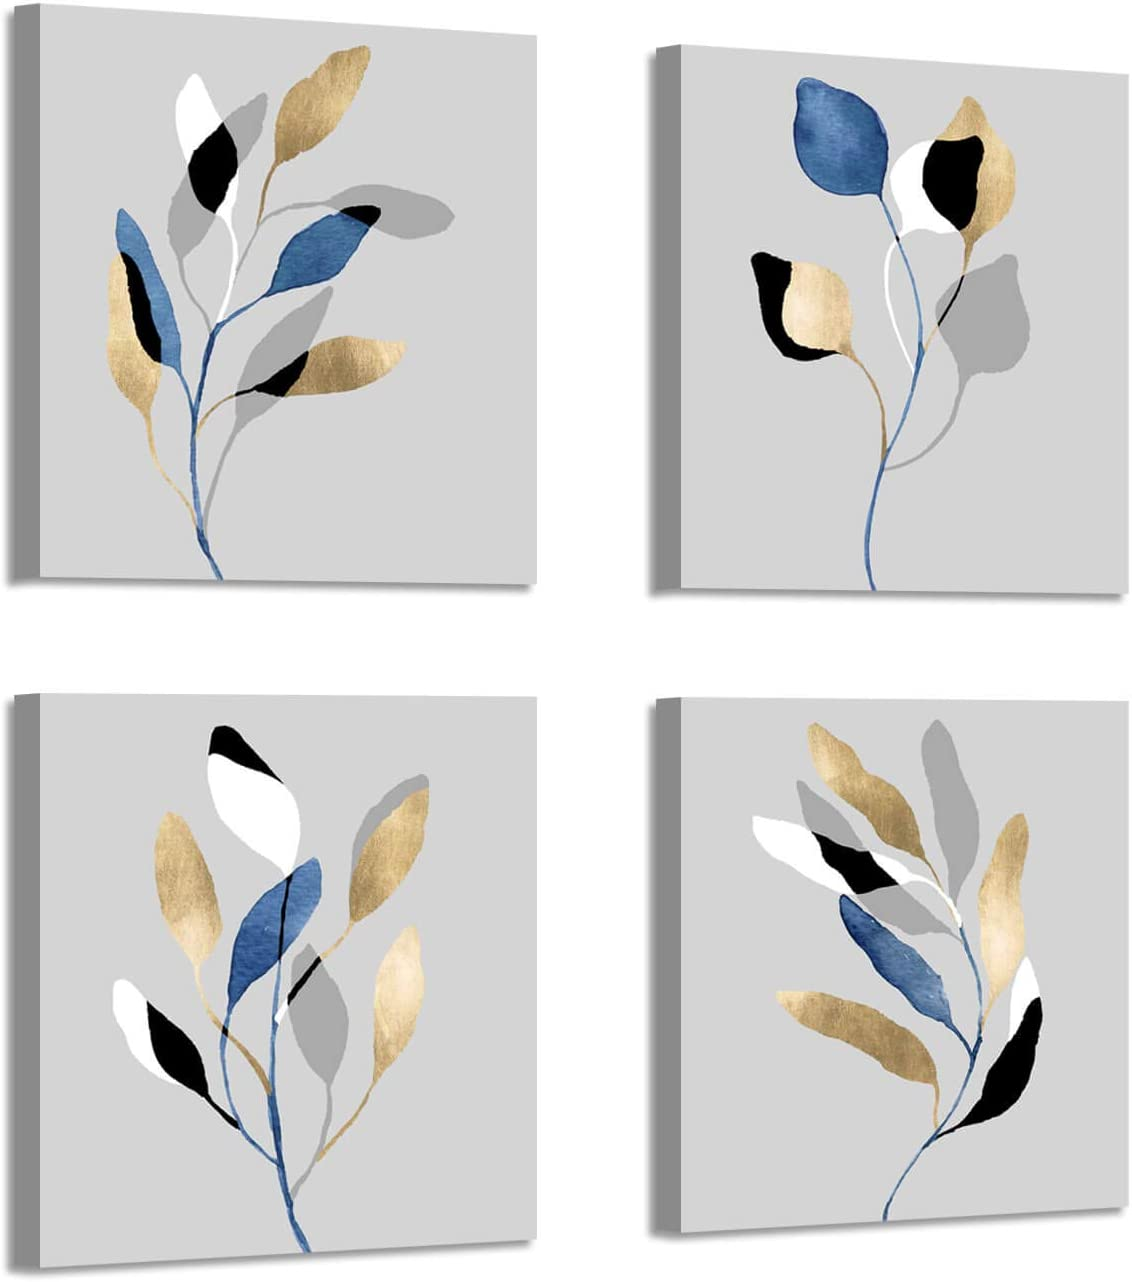 Botanical Leaf Prints Wall Art: Branch with Golden Leaves Pictures Paintings on Canvas Artwork for Dinning Room (12'' X 12'' x 4 Panels)